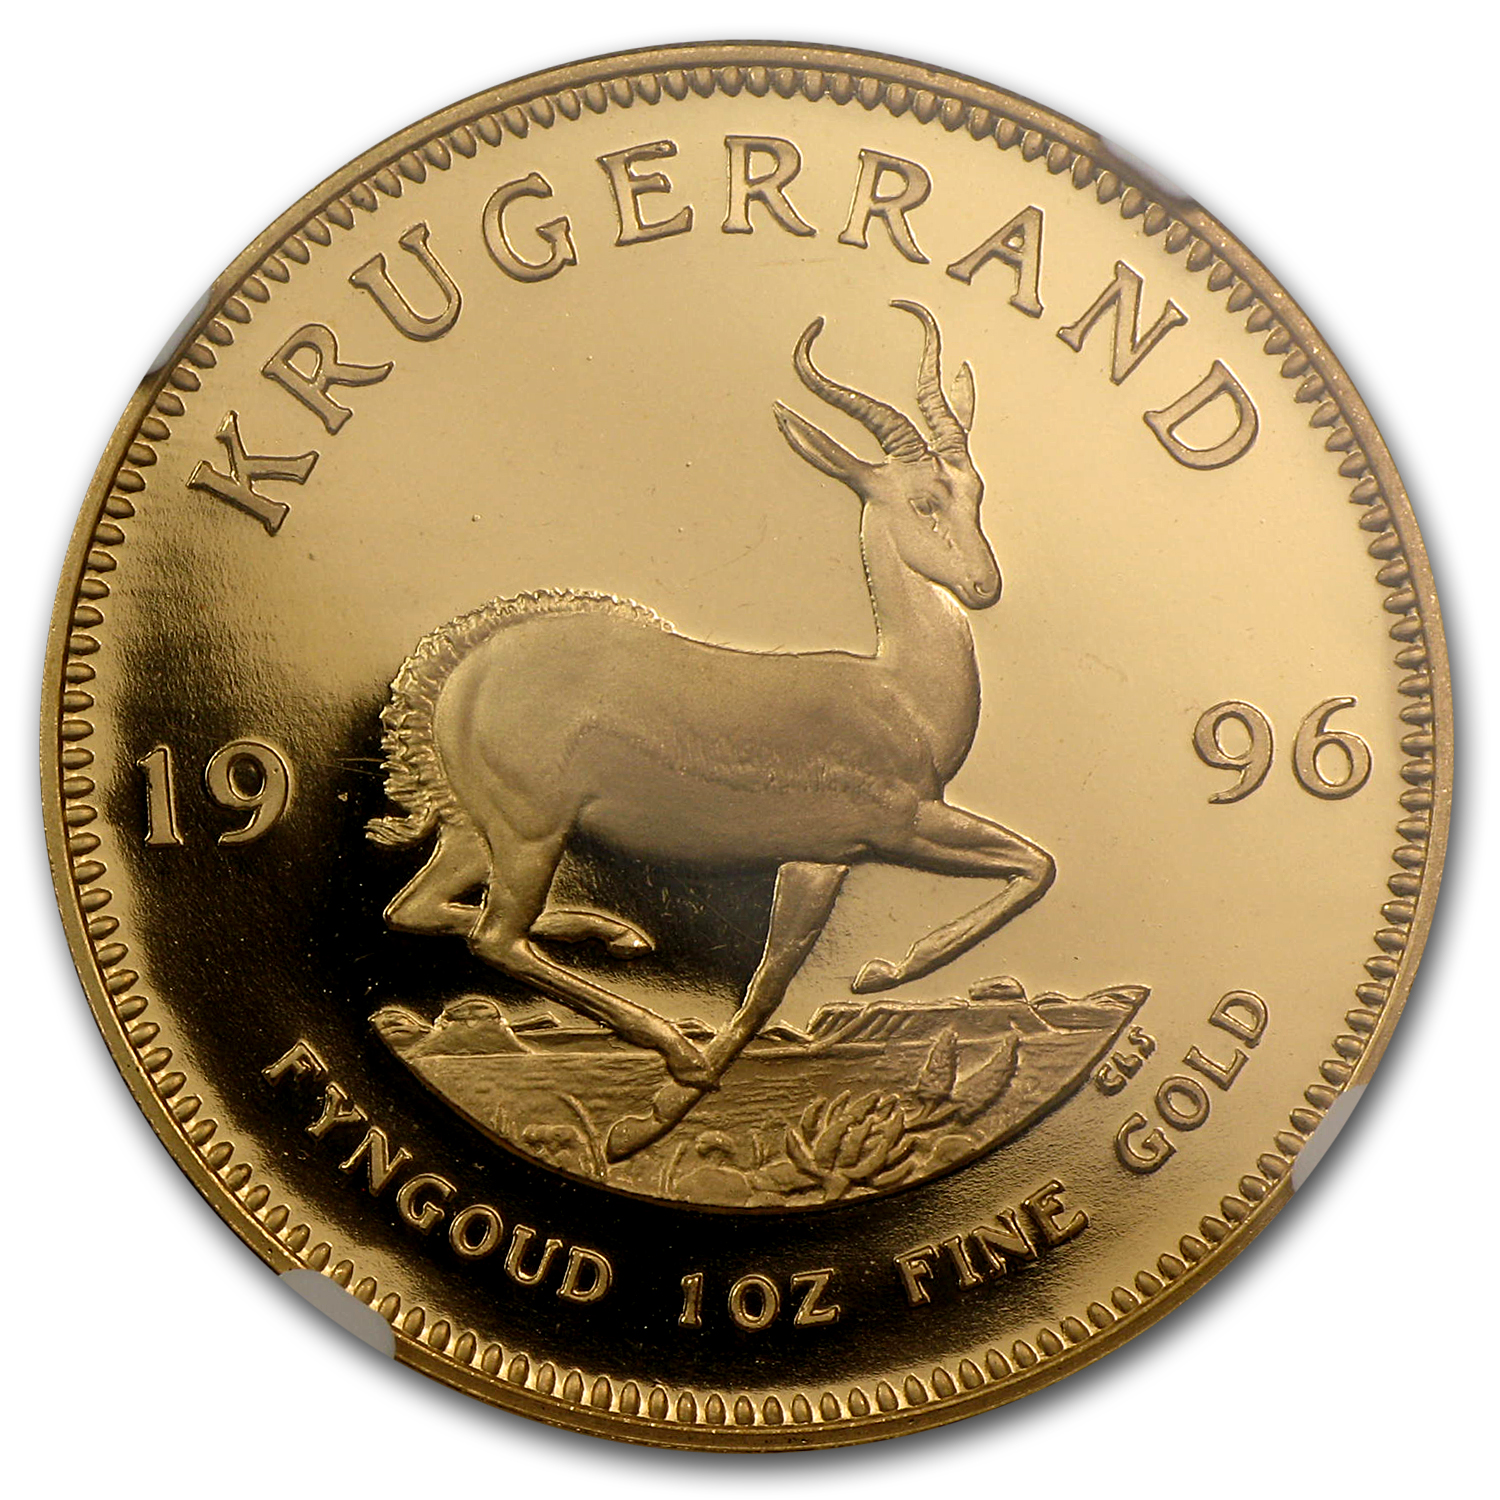 1996 1 oz Gold South African Krugerrand PF-68 NGC